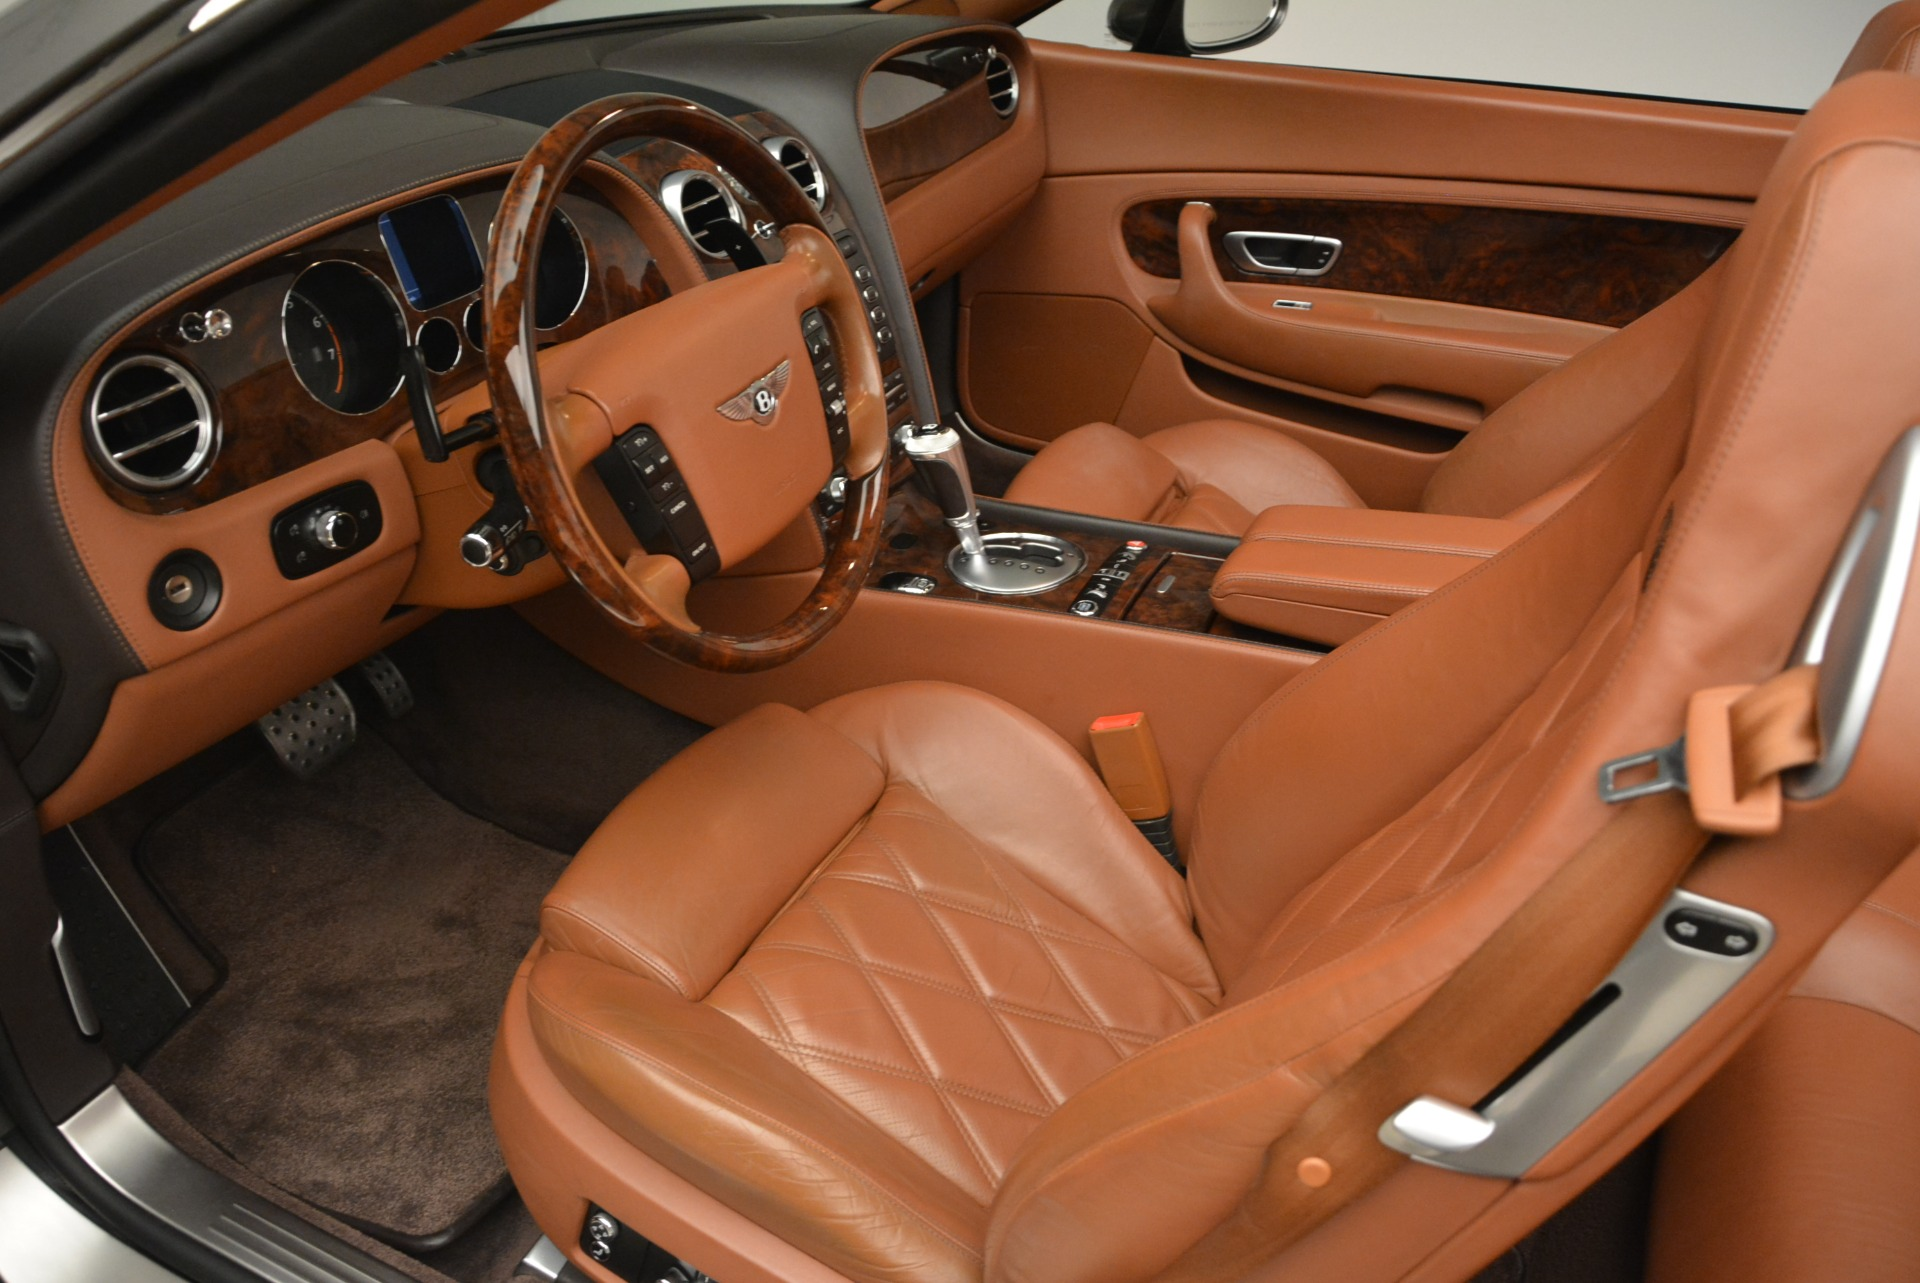 Used 2008 Bentley Continental GT W12 For Sale In Westport, CT 2190_p29